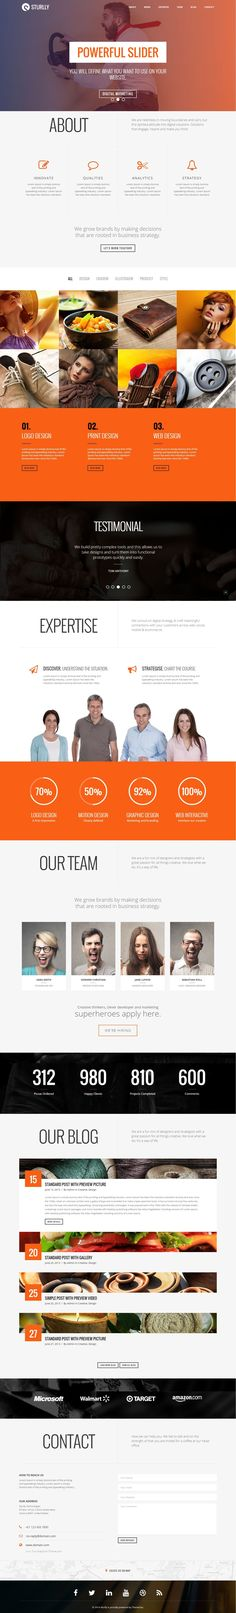 Multipurpose One Page Bootstrap Theme for Design Agency #website #template